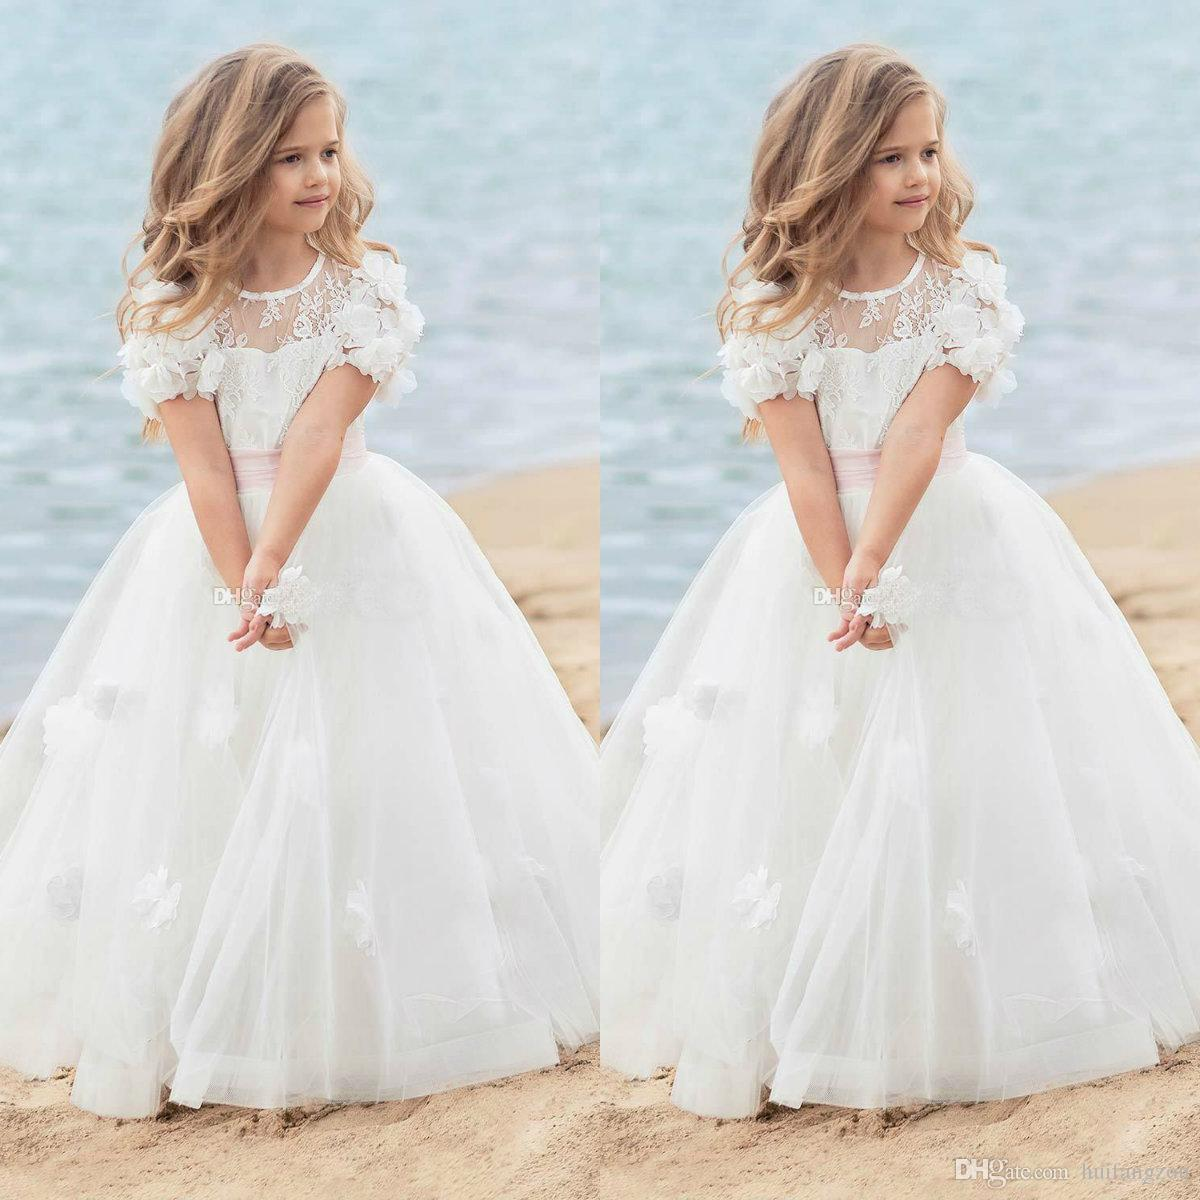 eb72a61d2 2019 Cute Flower Girl Dresses For Wedding Lace Short Sleeves Appliqued  Floor Length First Communion Dress Cheap Girls Pageant Dress Peach Flower  Girl ...